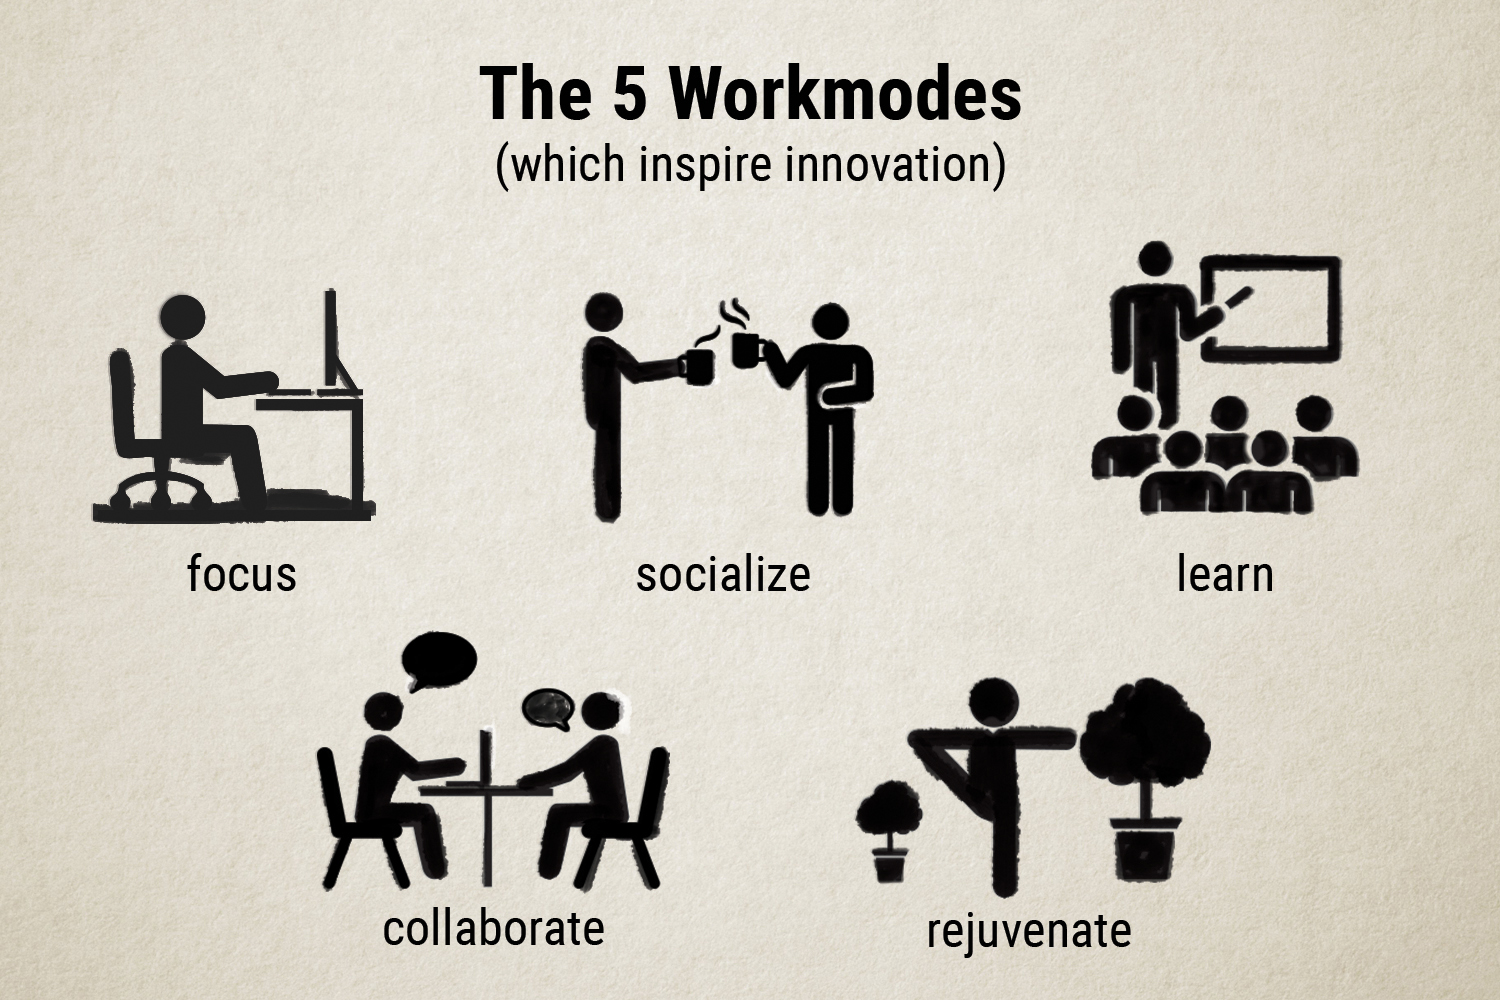 The 5 Workmodes: focus, socialize, learn, collaborate, and rejuvenate.